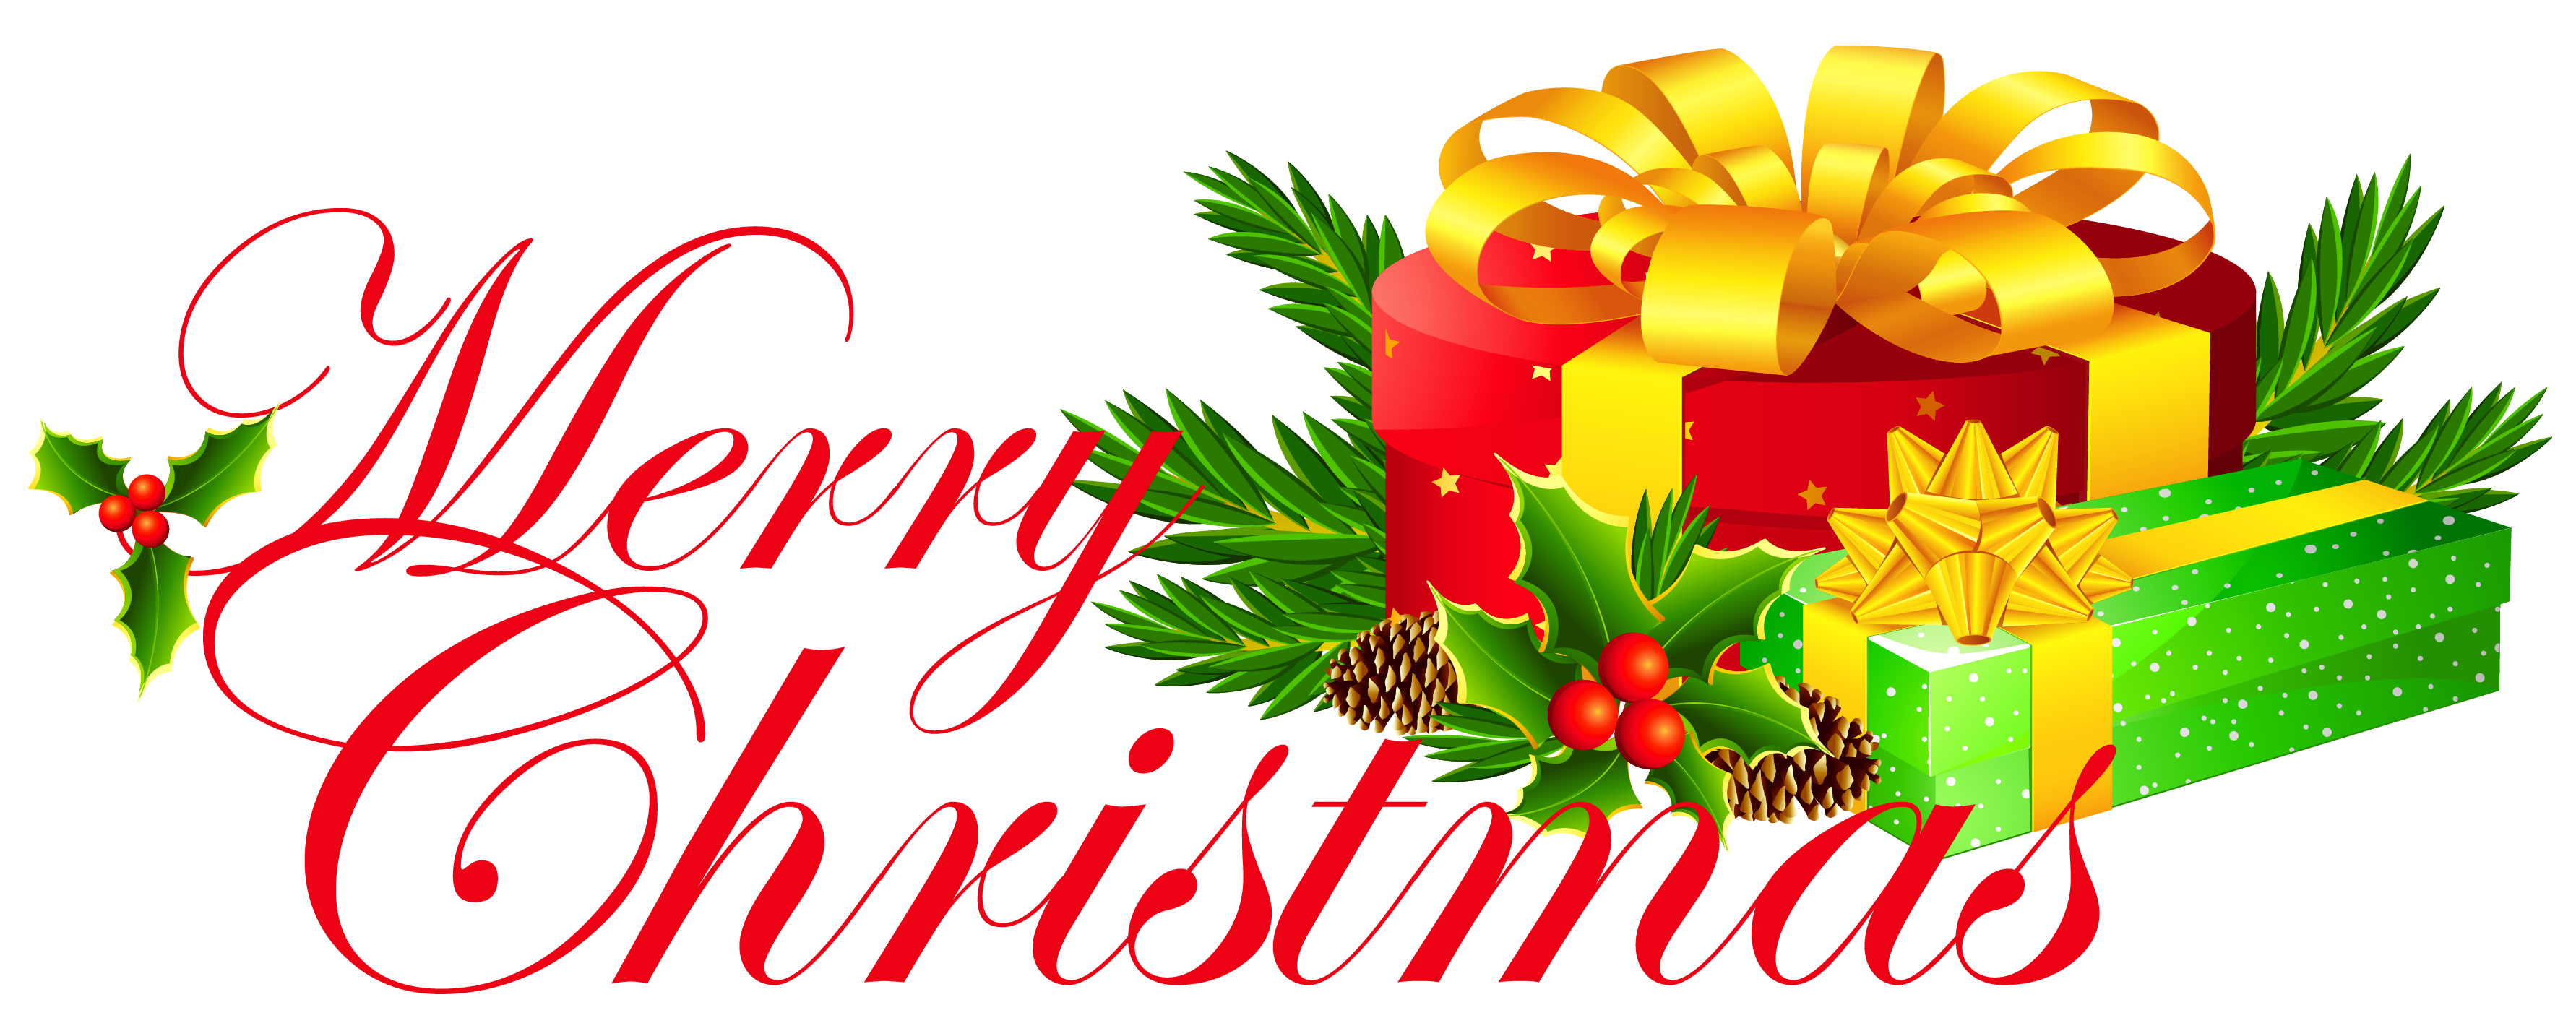 3565x1427 Gift Clipart Merry Christmas